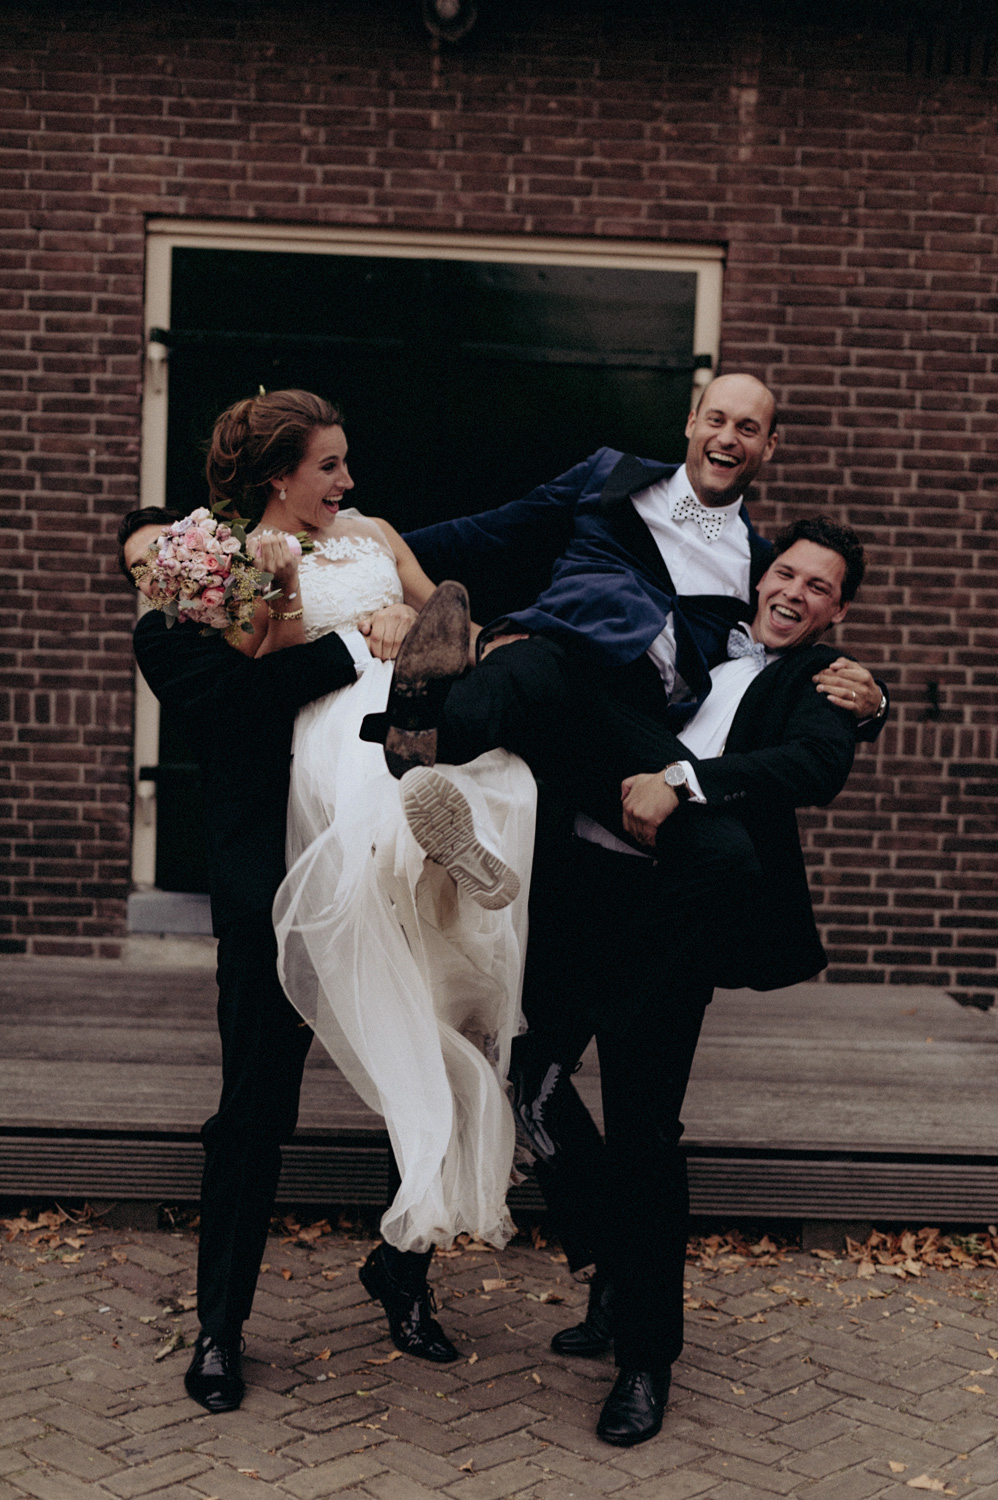 Bride and groom lifted in the air by wedding guests at Rijk van de Keizer